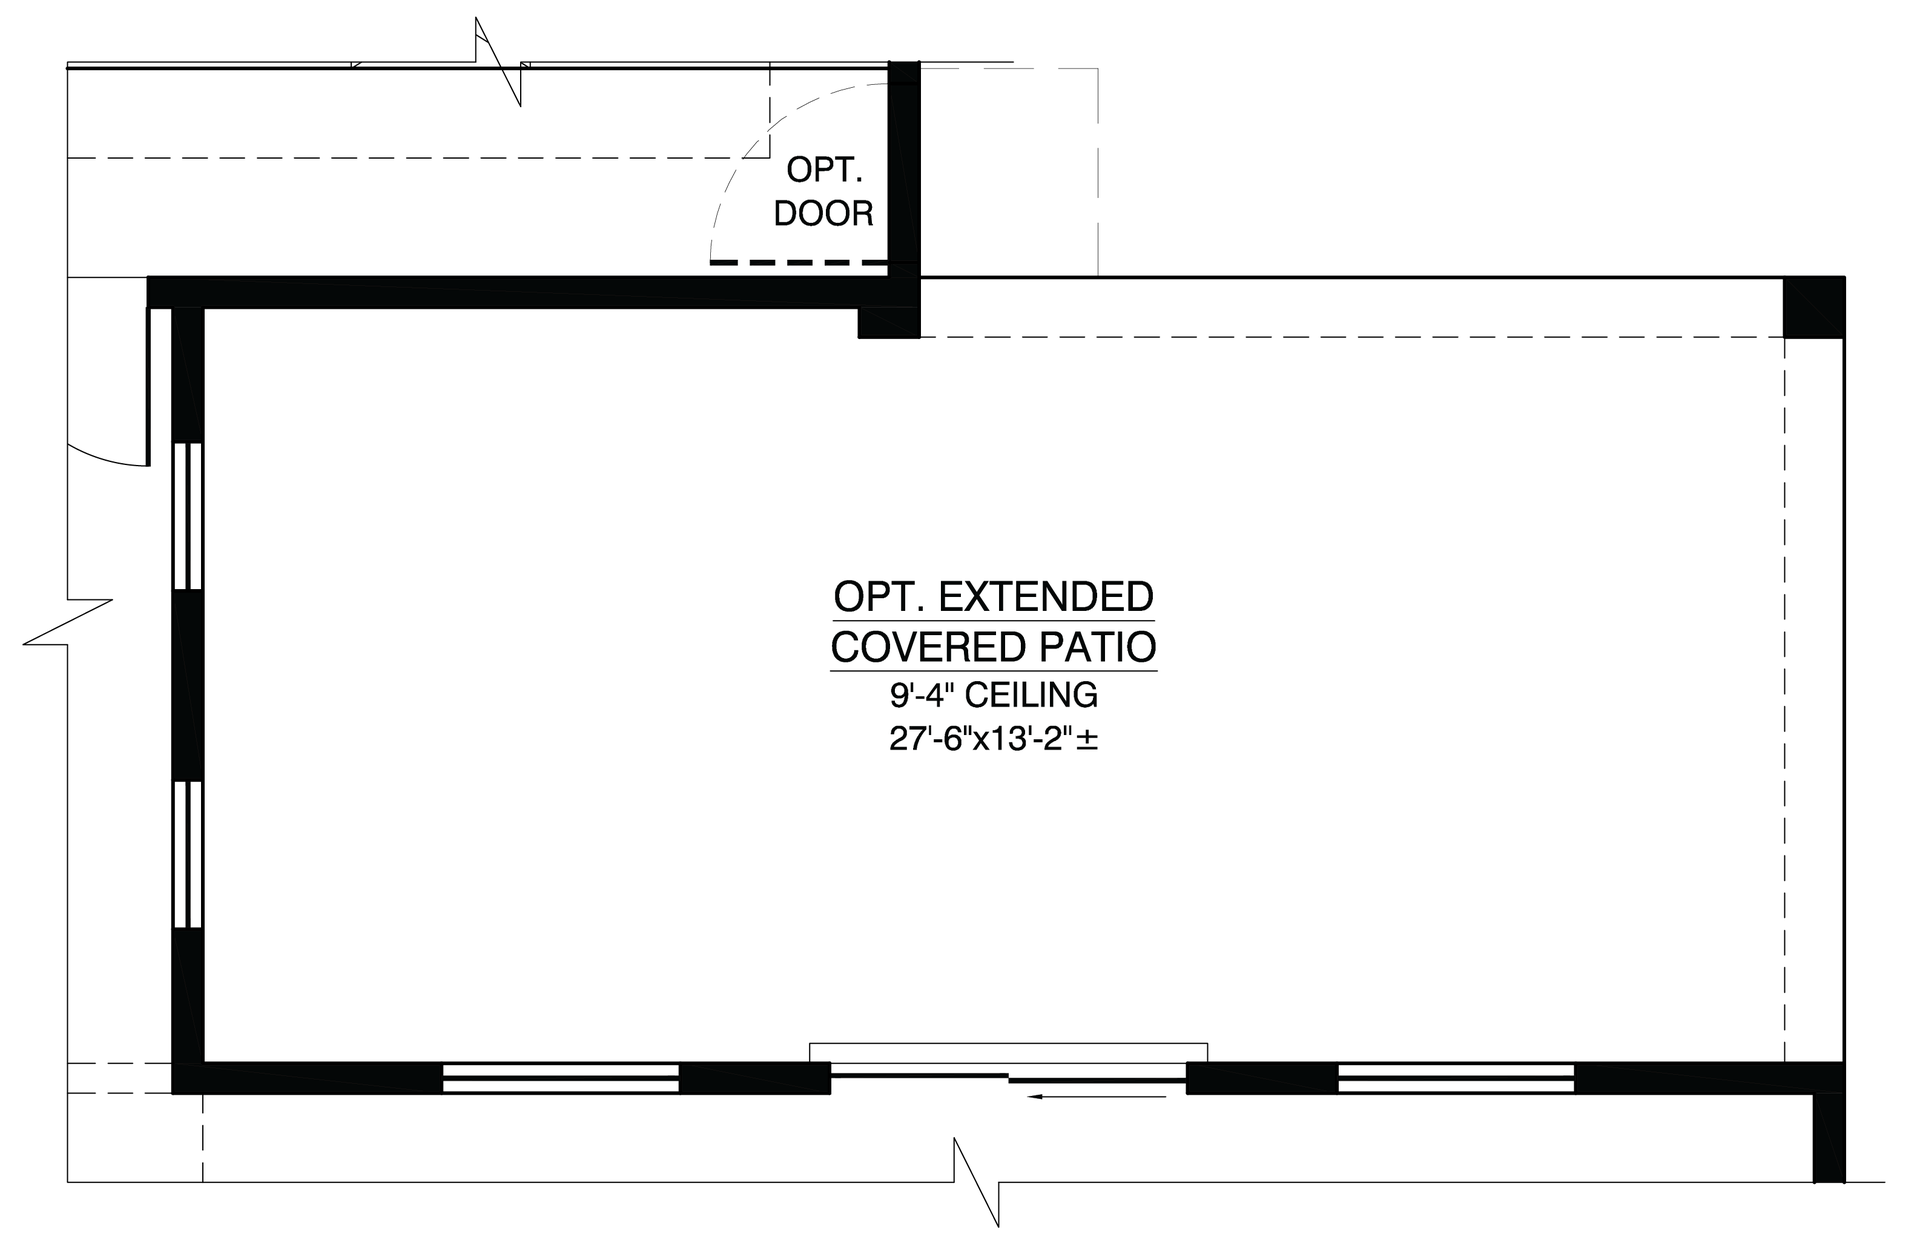 Optional Extended Patio